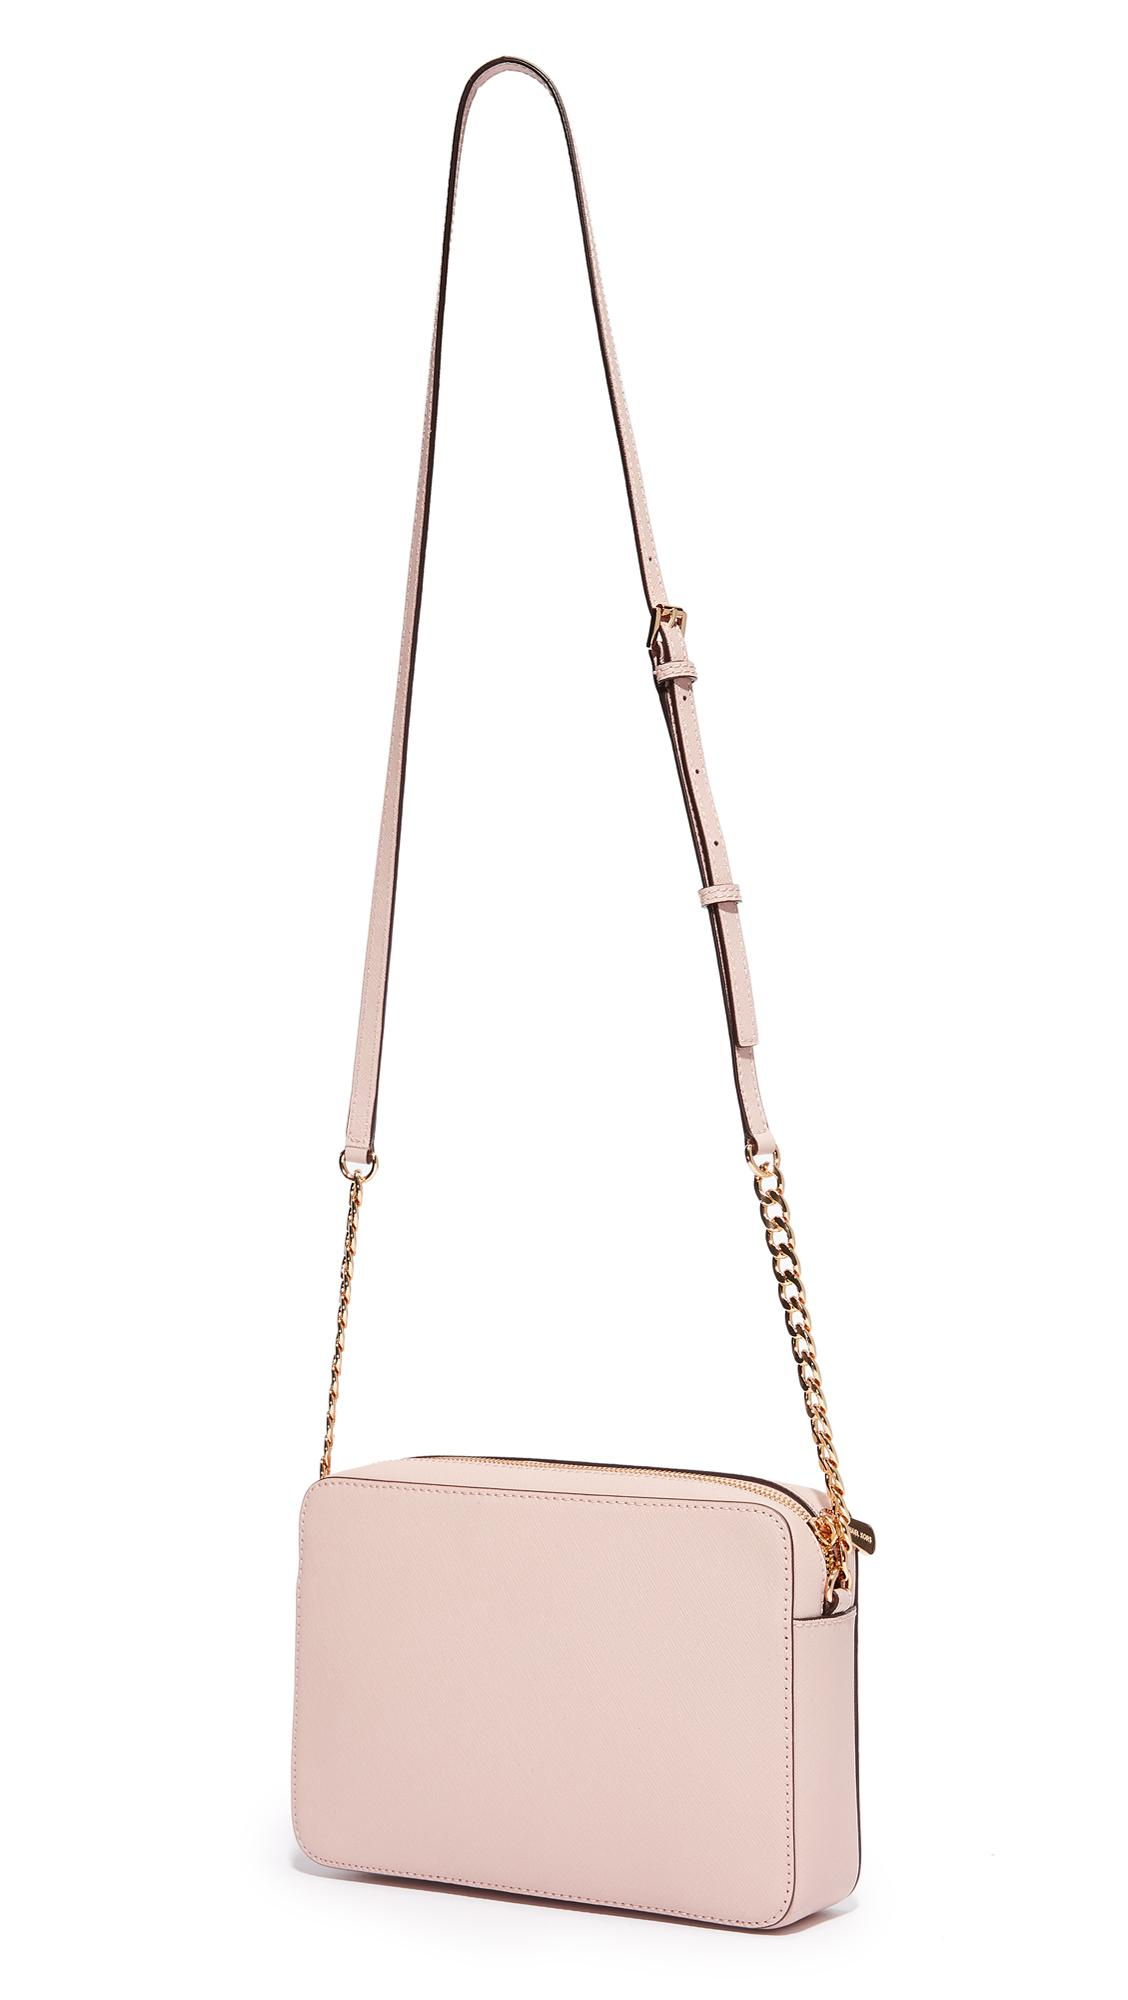 MICHAEL Michael Kors Leather Large East / West Cross Body Bag in Soft Pink (Pink)